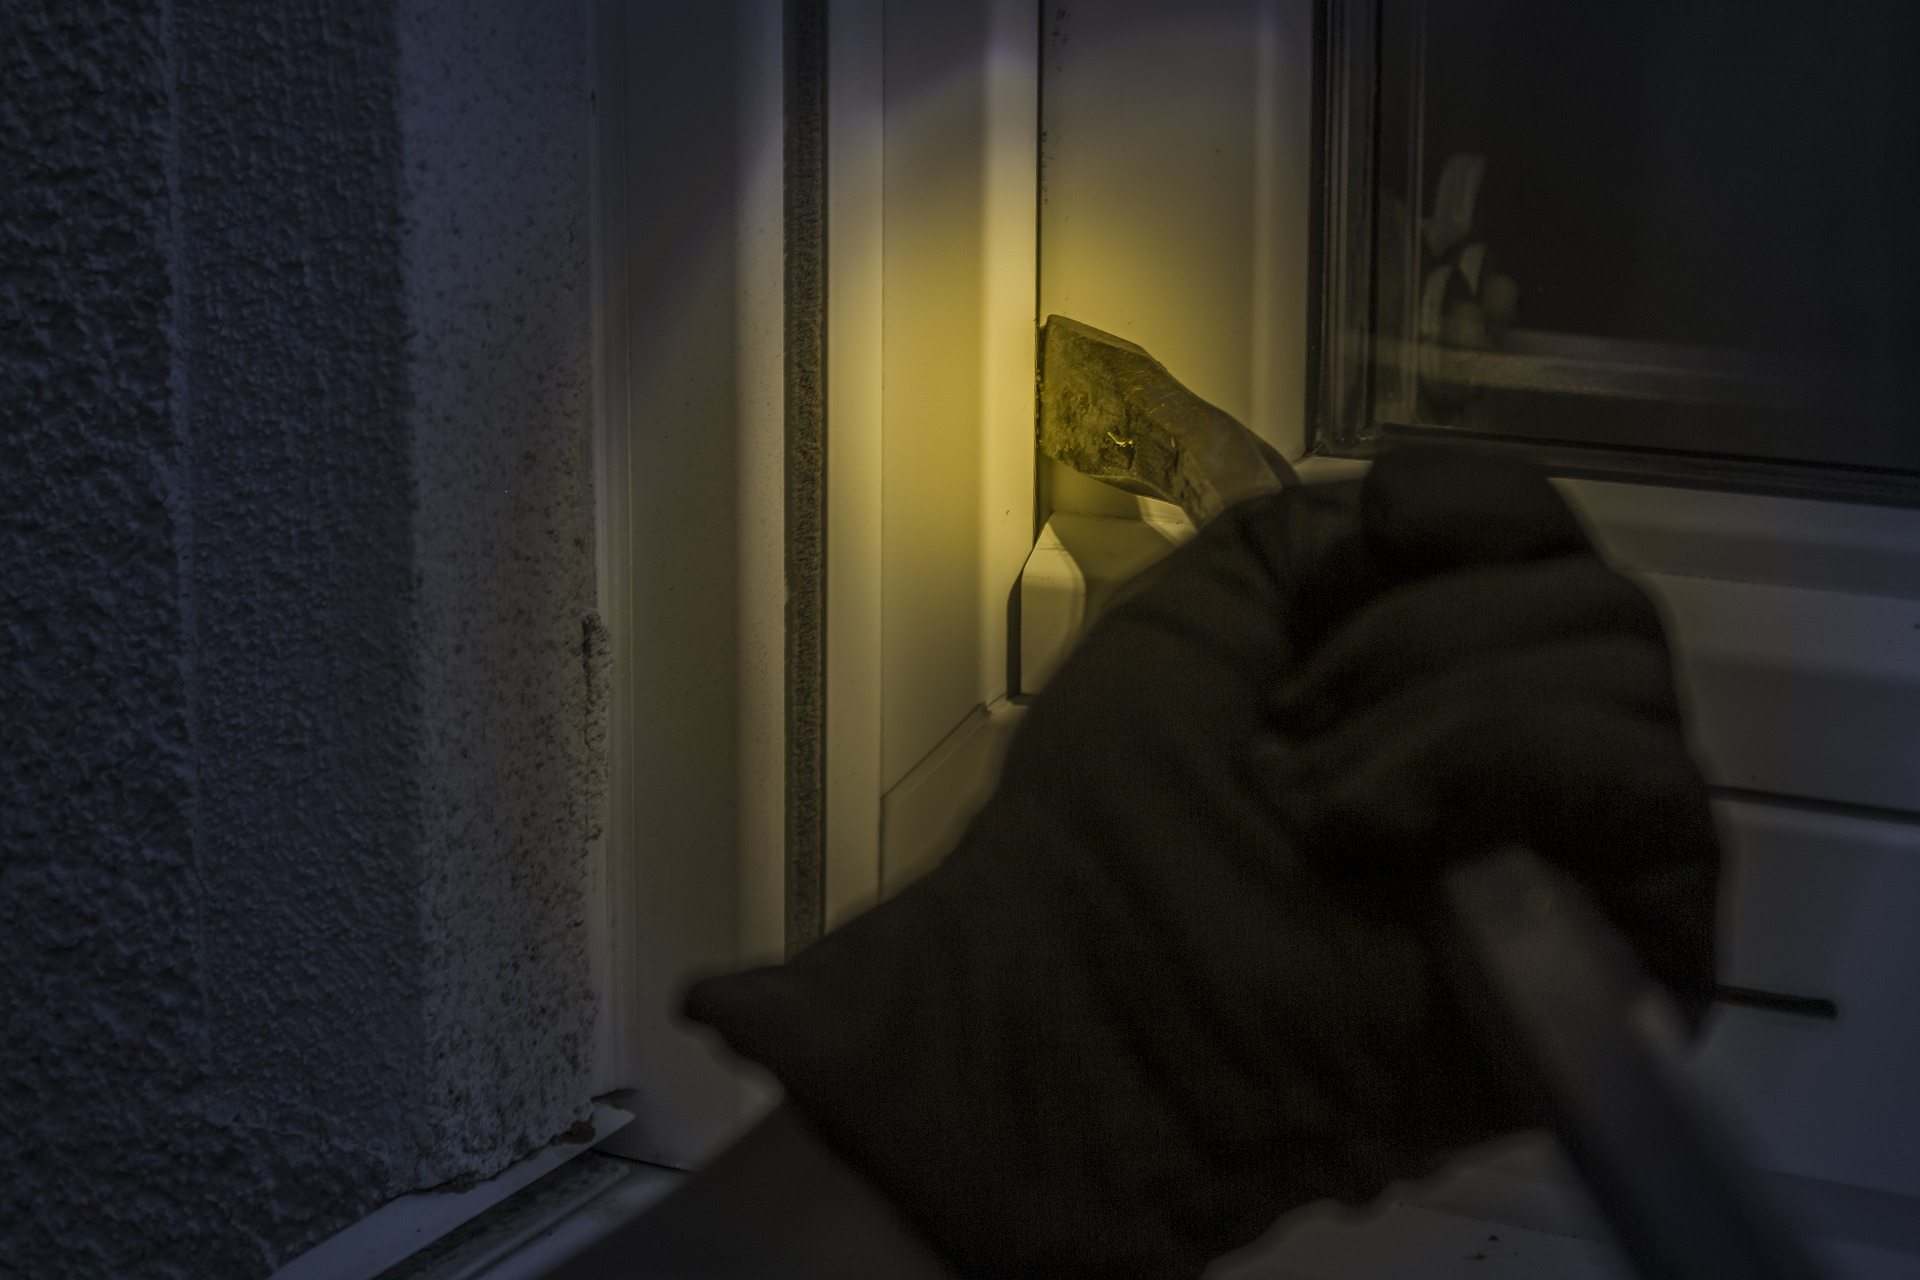 80 per cent of burglaries go unsolved in County Durham and Darlington